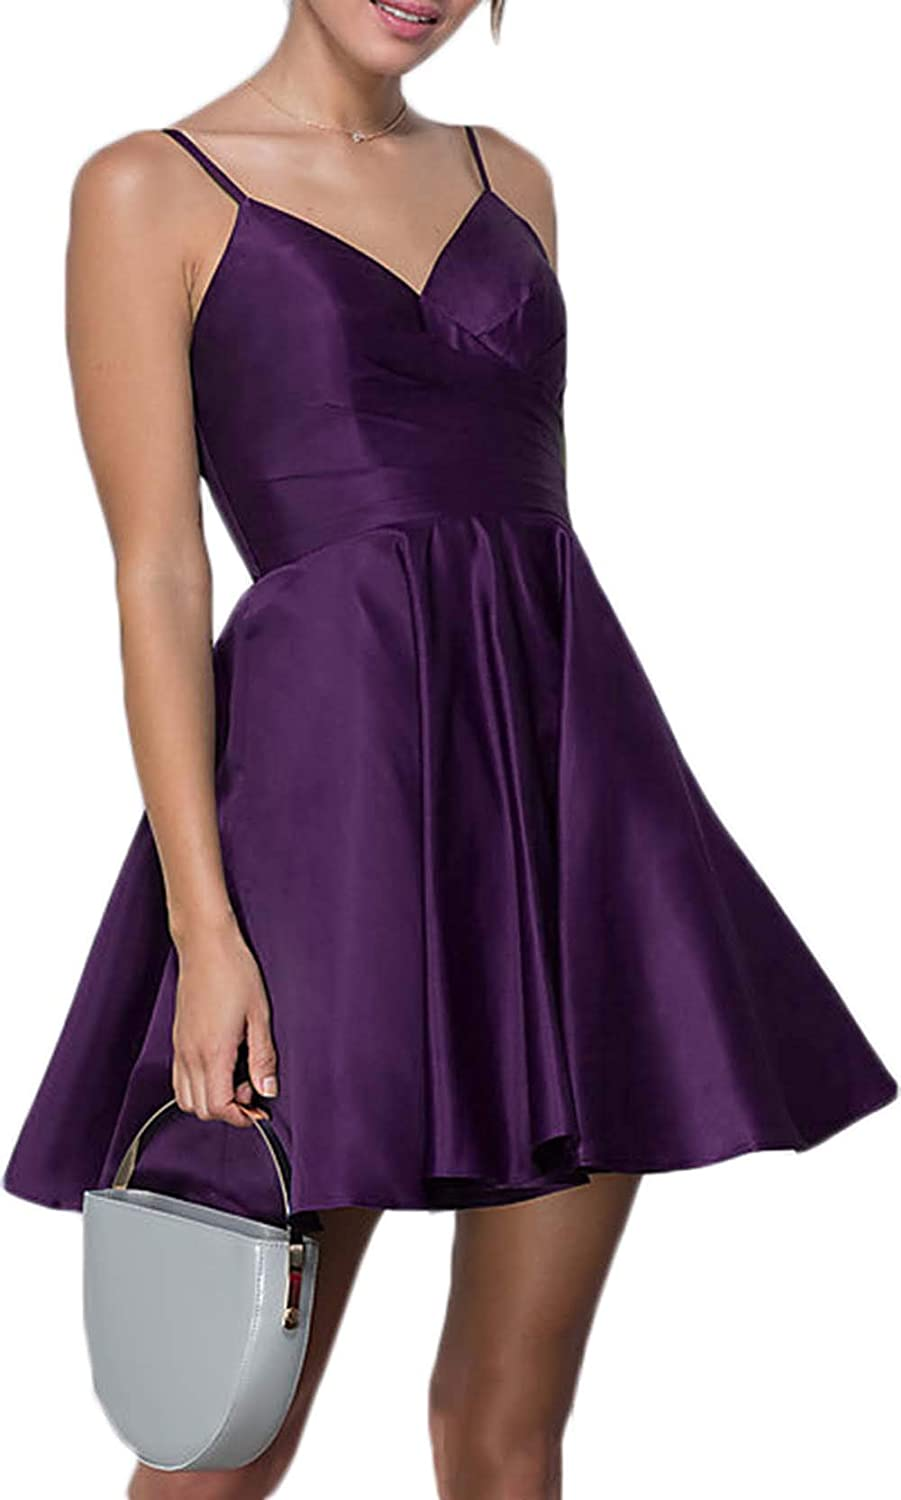 Spaghetti Strap V Neck Pleats Prom Dresses Short Satin A Line Homecoming Dresses 2019 with Pockets